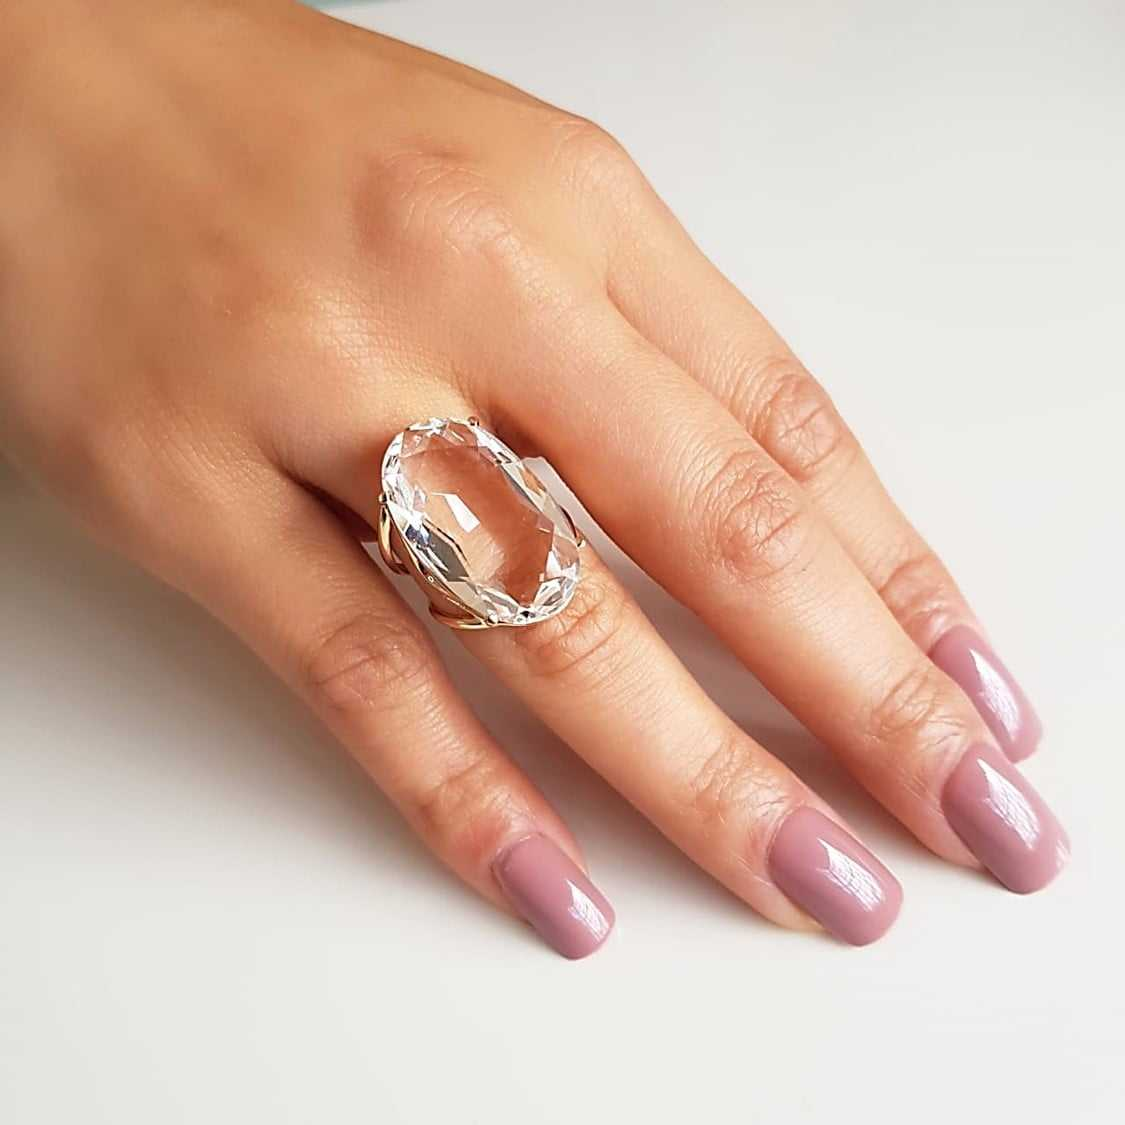 Anel cristal white oval 25x15mm - Modelo Clarice